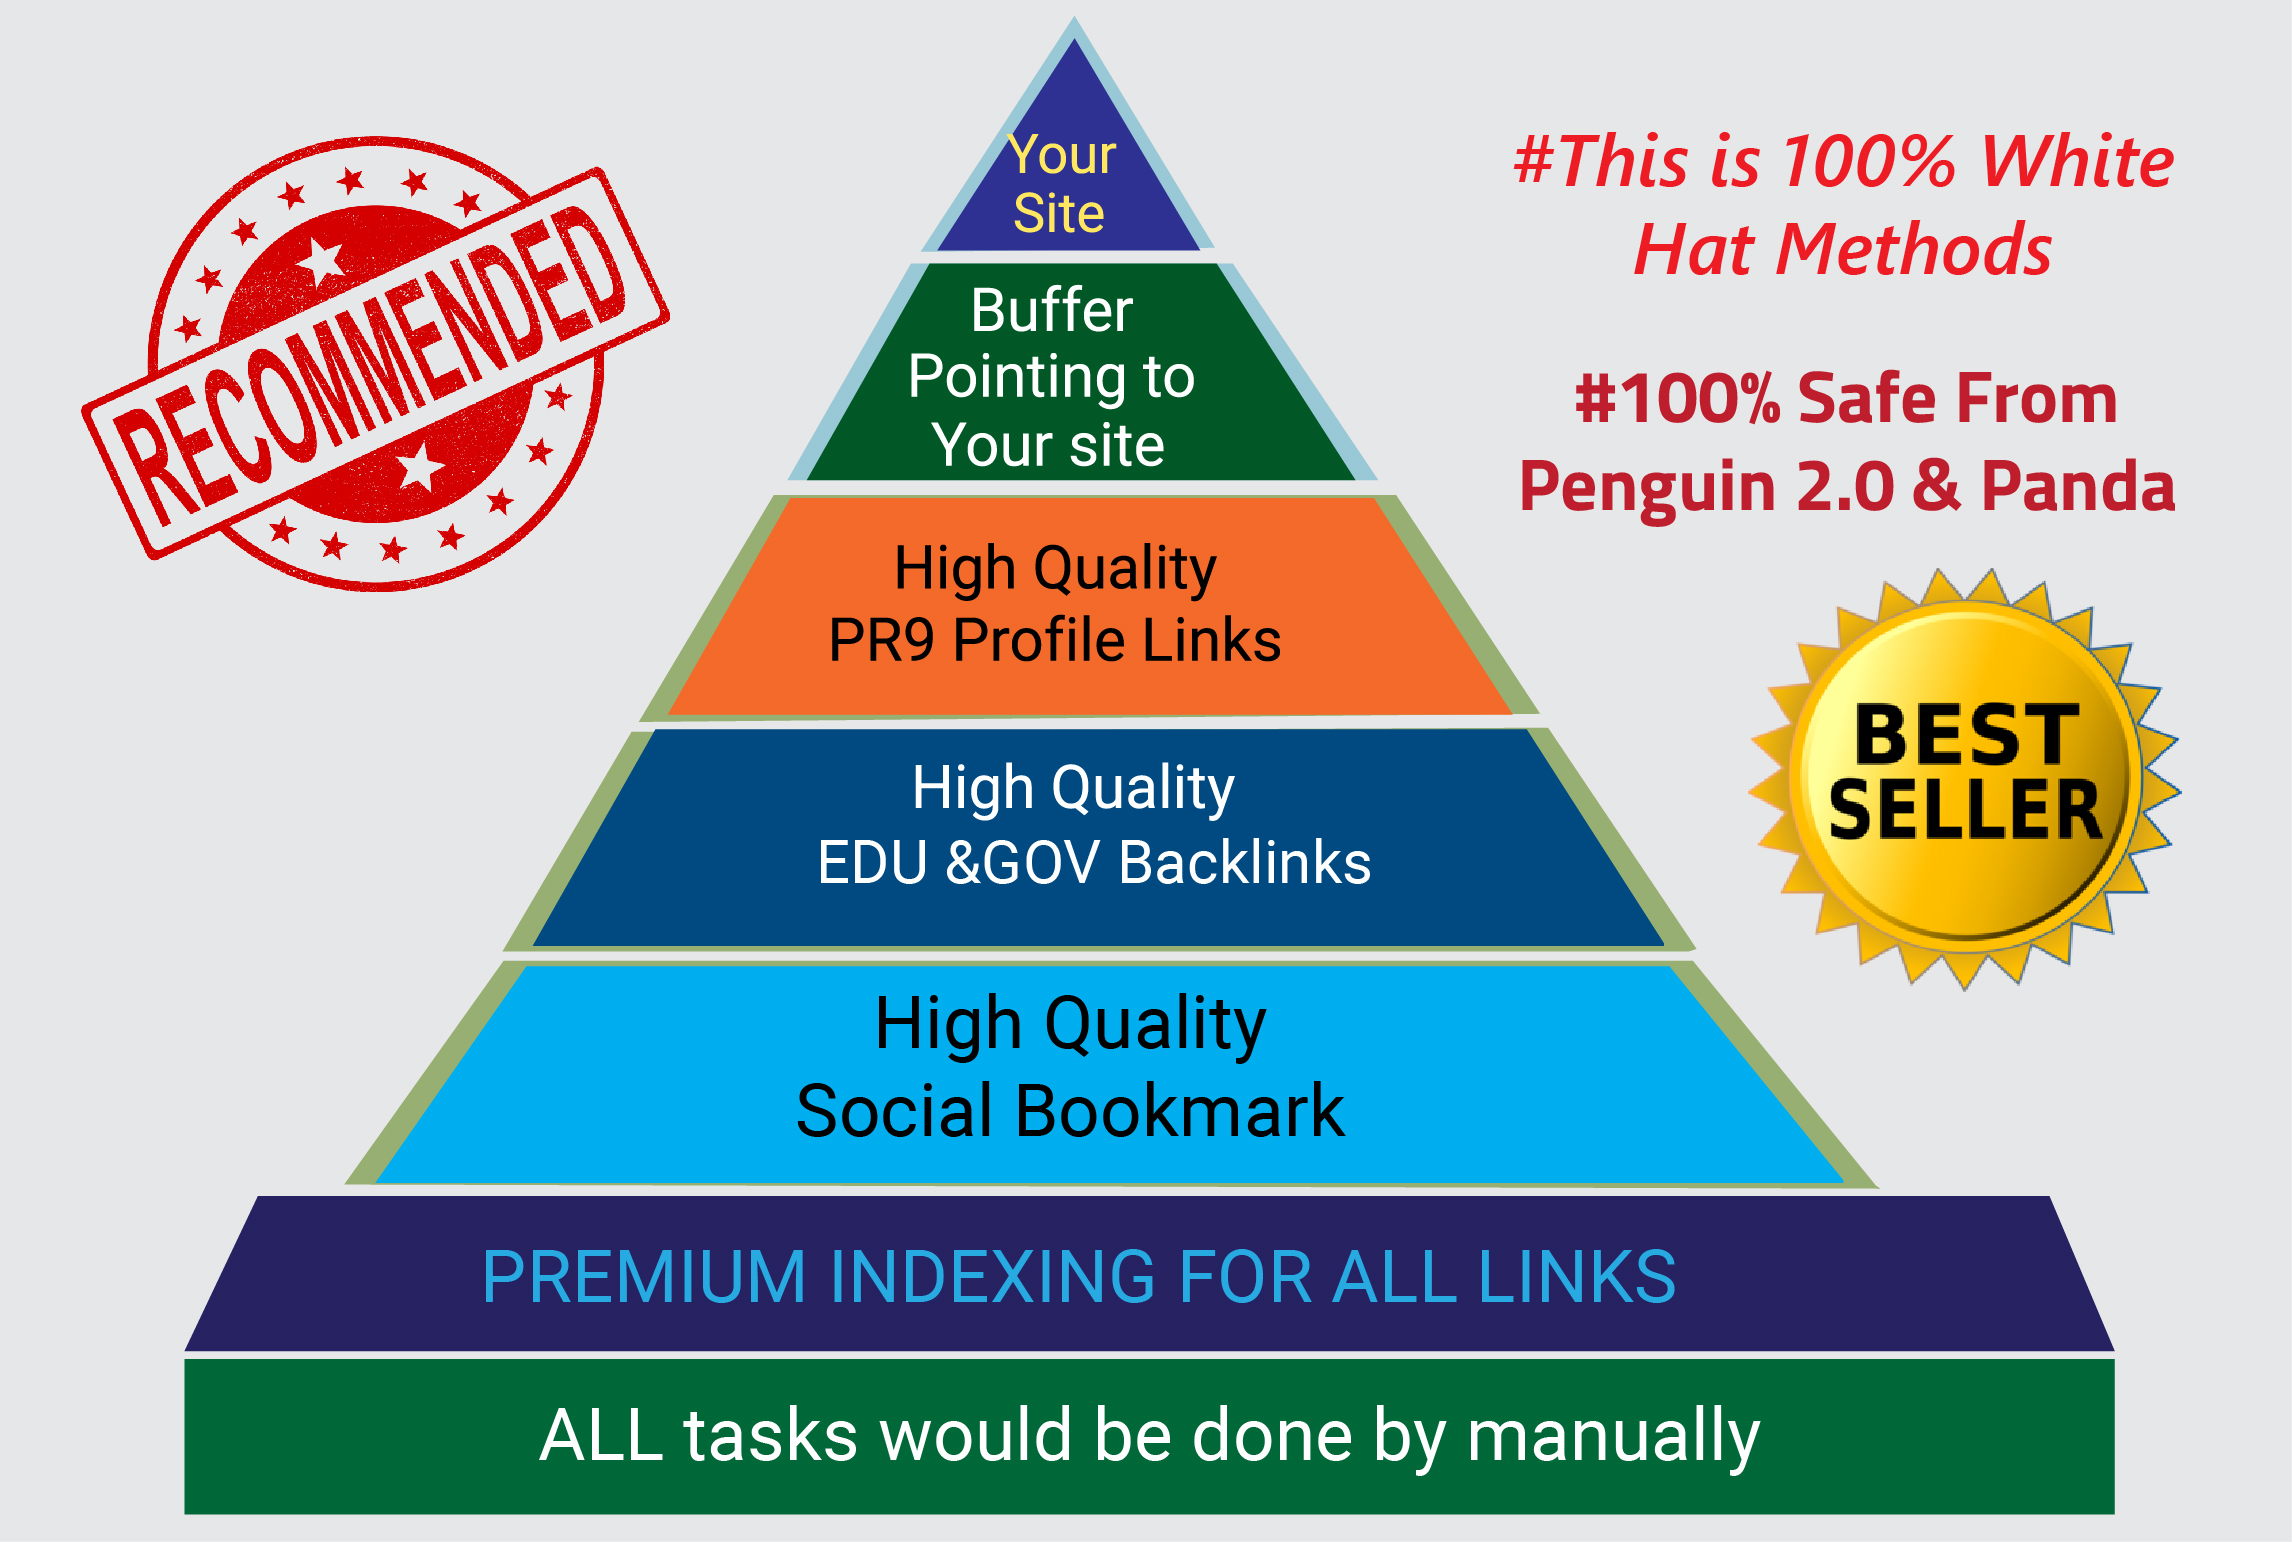 "Powerfull SEO - Advanced PYRAMID Service ""WHIT HAT Mathord """